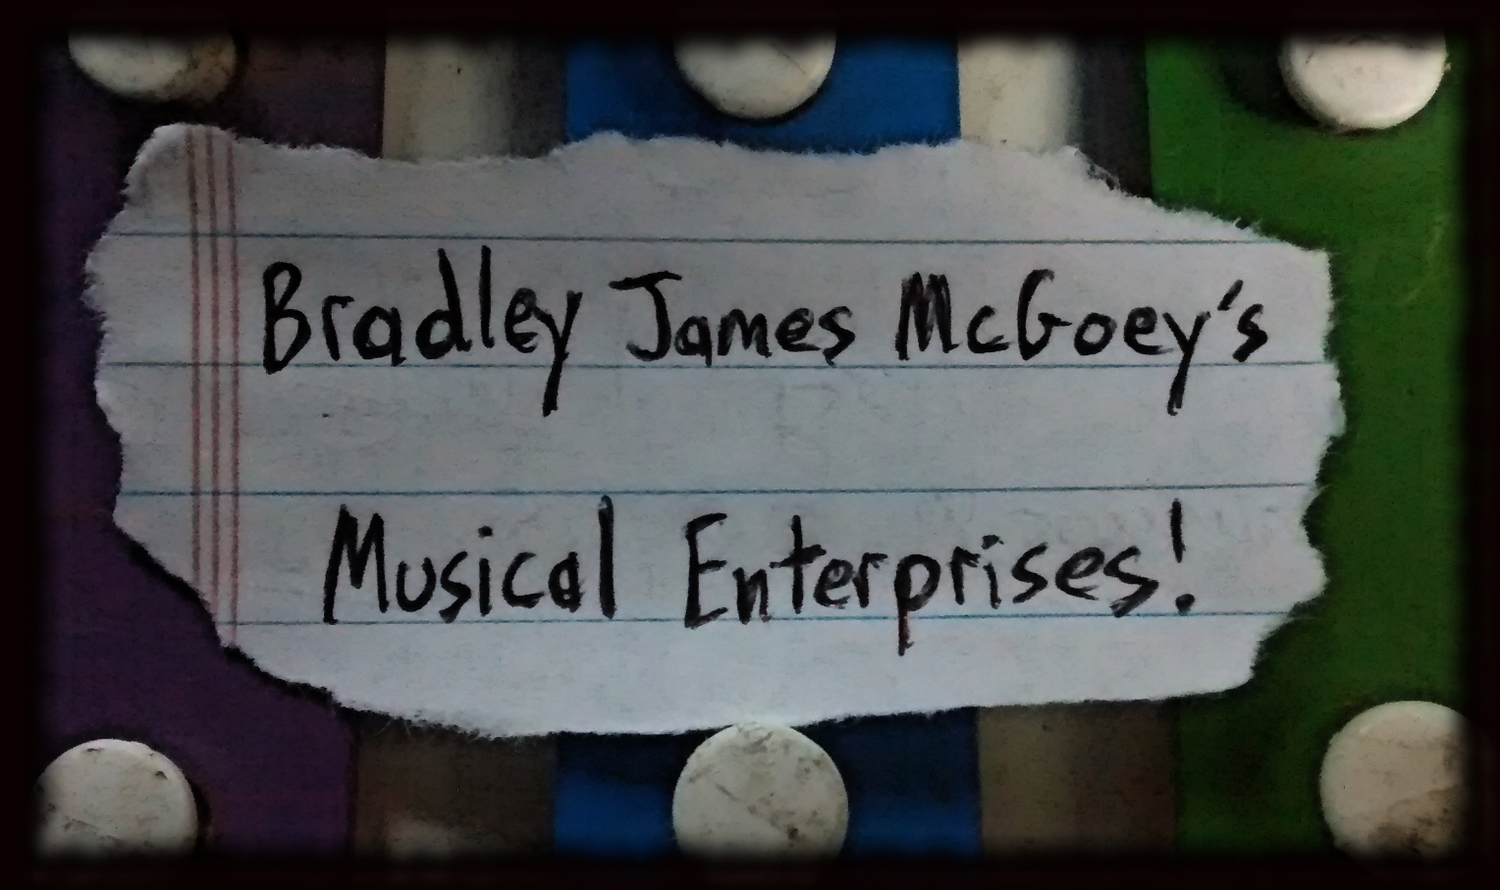 Bradley James McGoey's Musical Enterprises